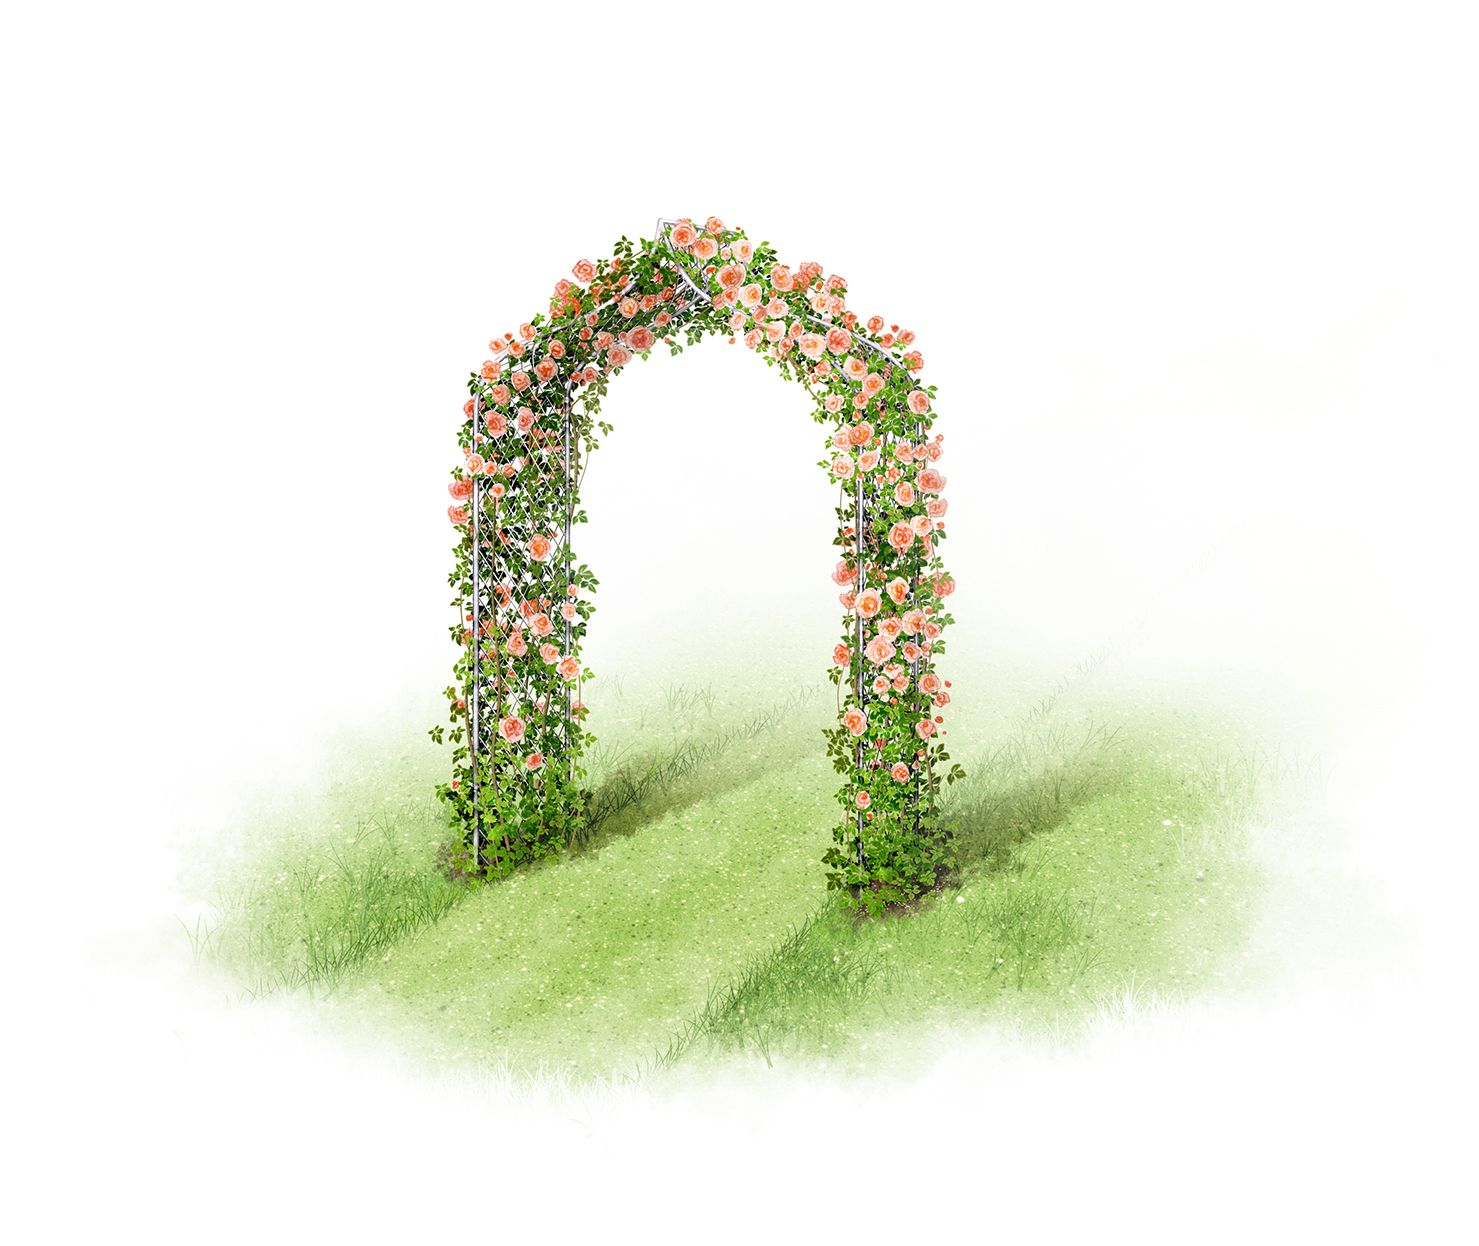 Garden arch illustrations - decorative metal arch